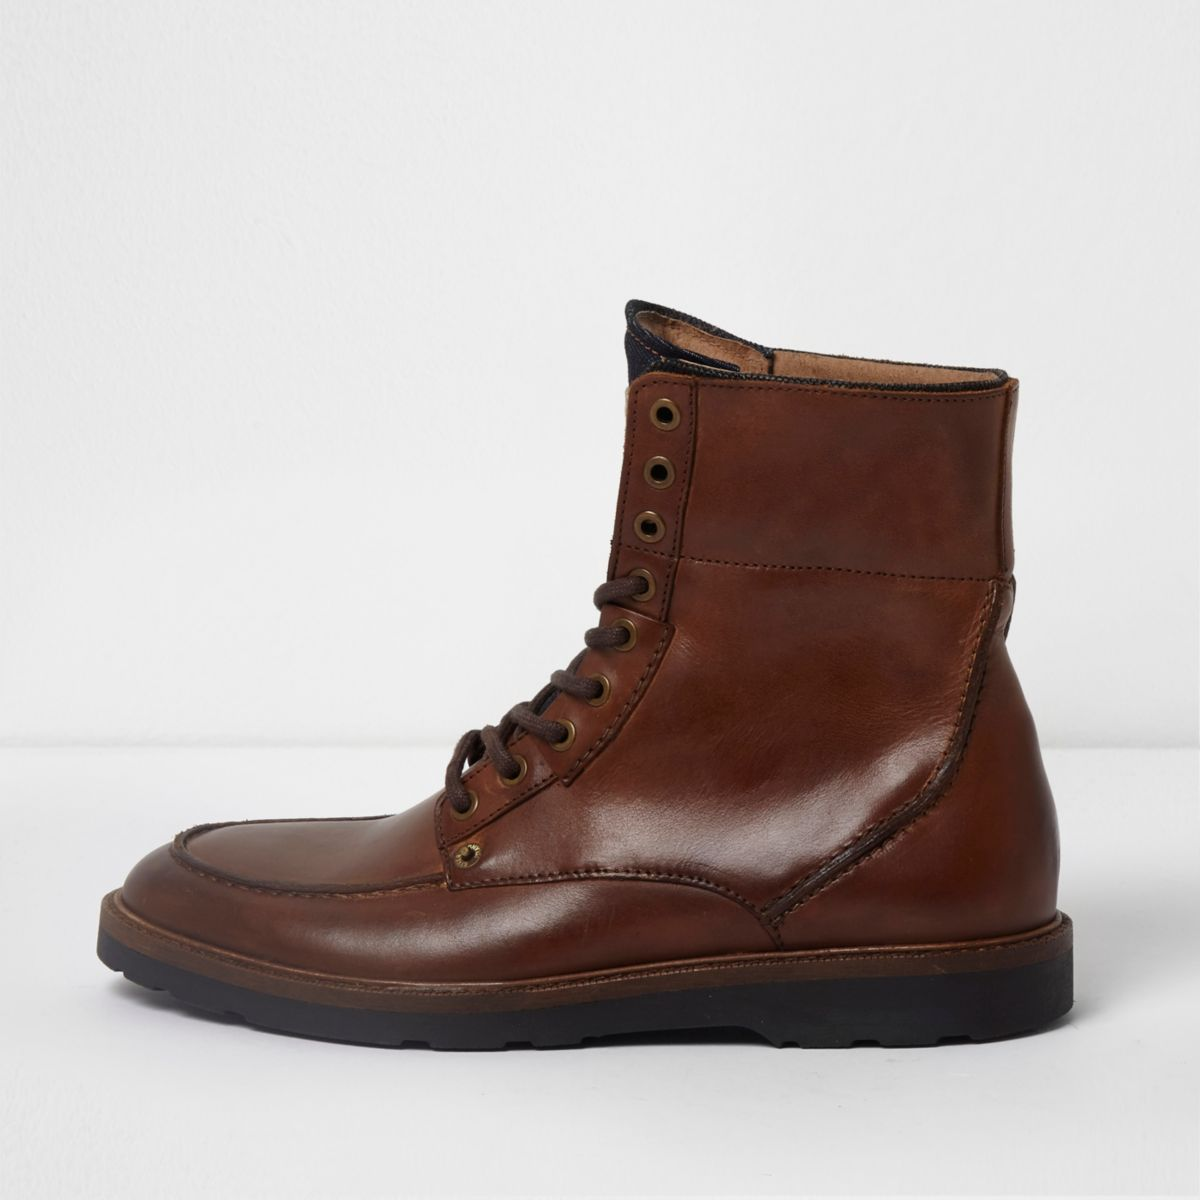 Tan leather apron toe lace-up boots